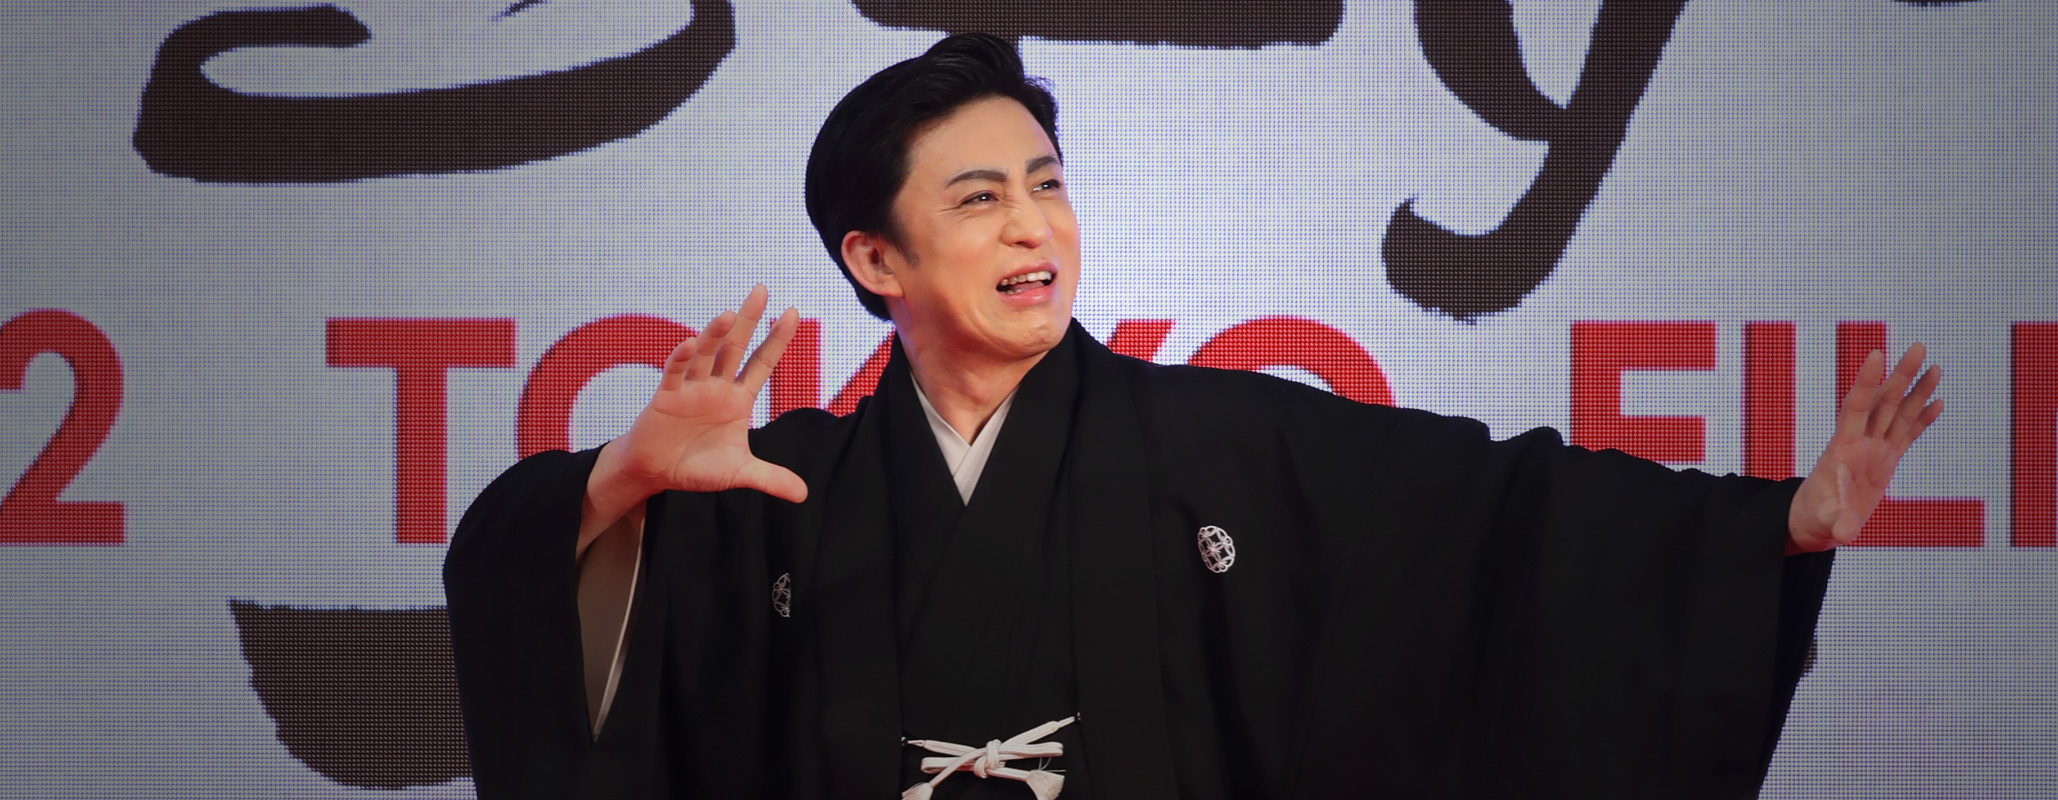 "Opening event Red Carpet, ""CinemaKabuki Onna Goroshi Abura no Jigoku (Murder in a Hell of Oil)"" Koshiro Matsumoto"